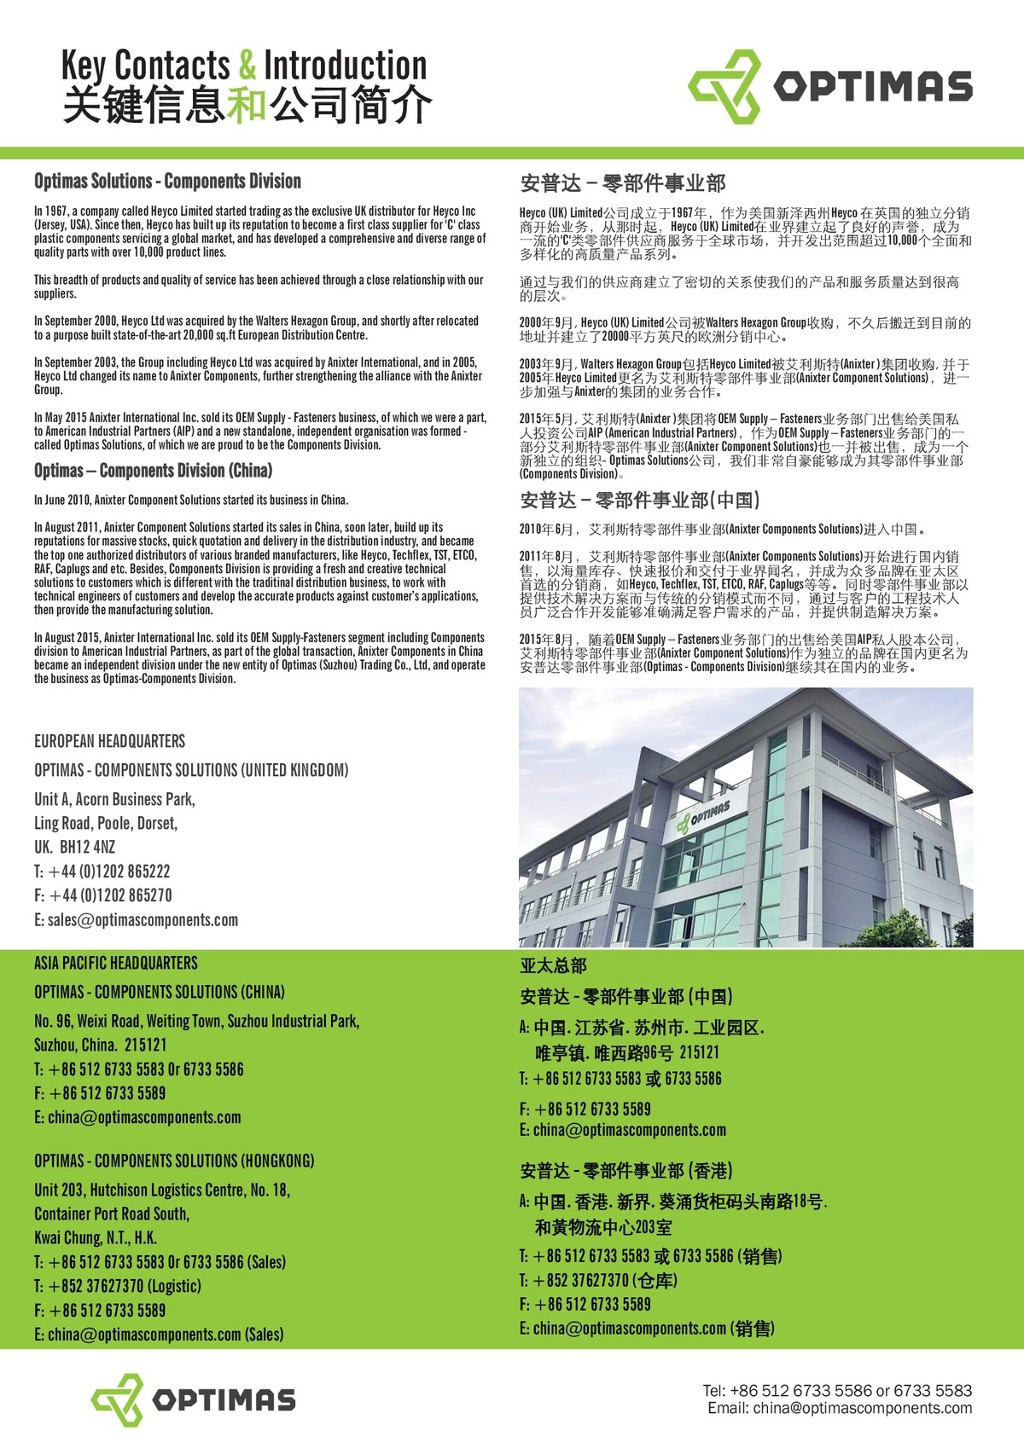 Optimas Oe Solutions Products Overview 2010 11 Printed Circuit Board China Gua Page 2